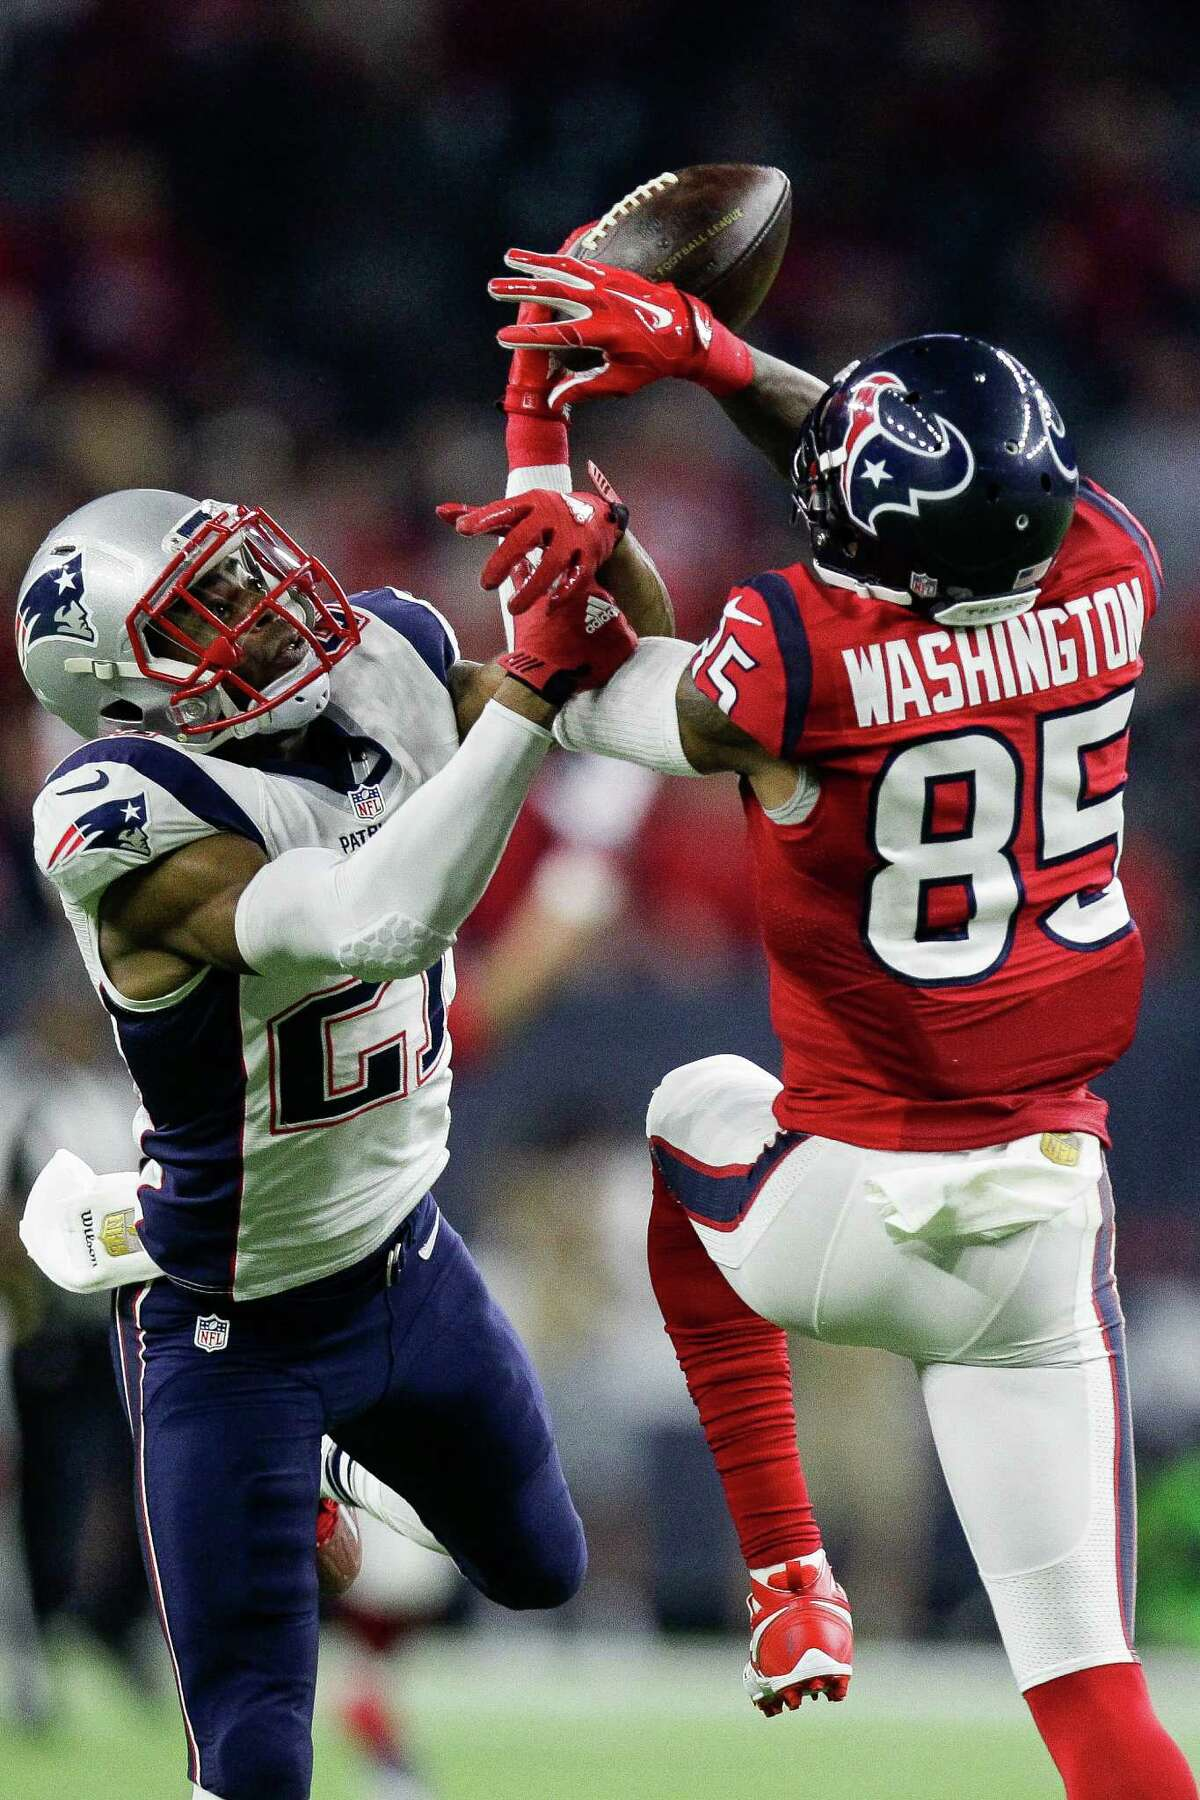 Patriots cornerback Malcolm Butler, known for a Super Bowl-deciding interception, breaks up a pass intended for Nate Washington, right, during last year's game against the Texans.